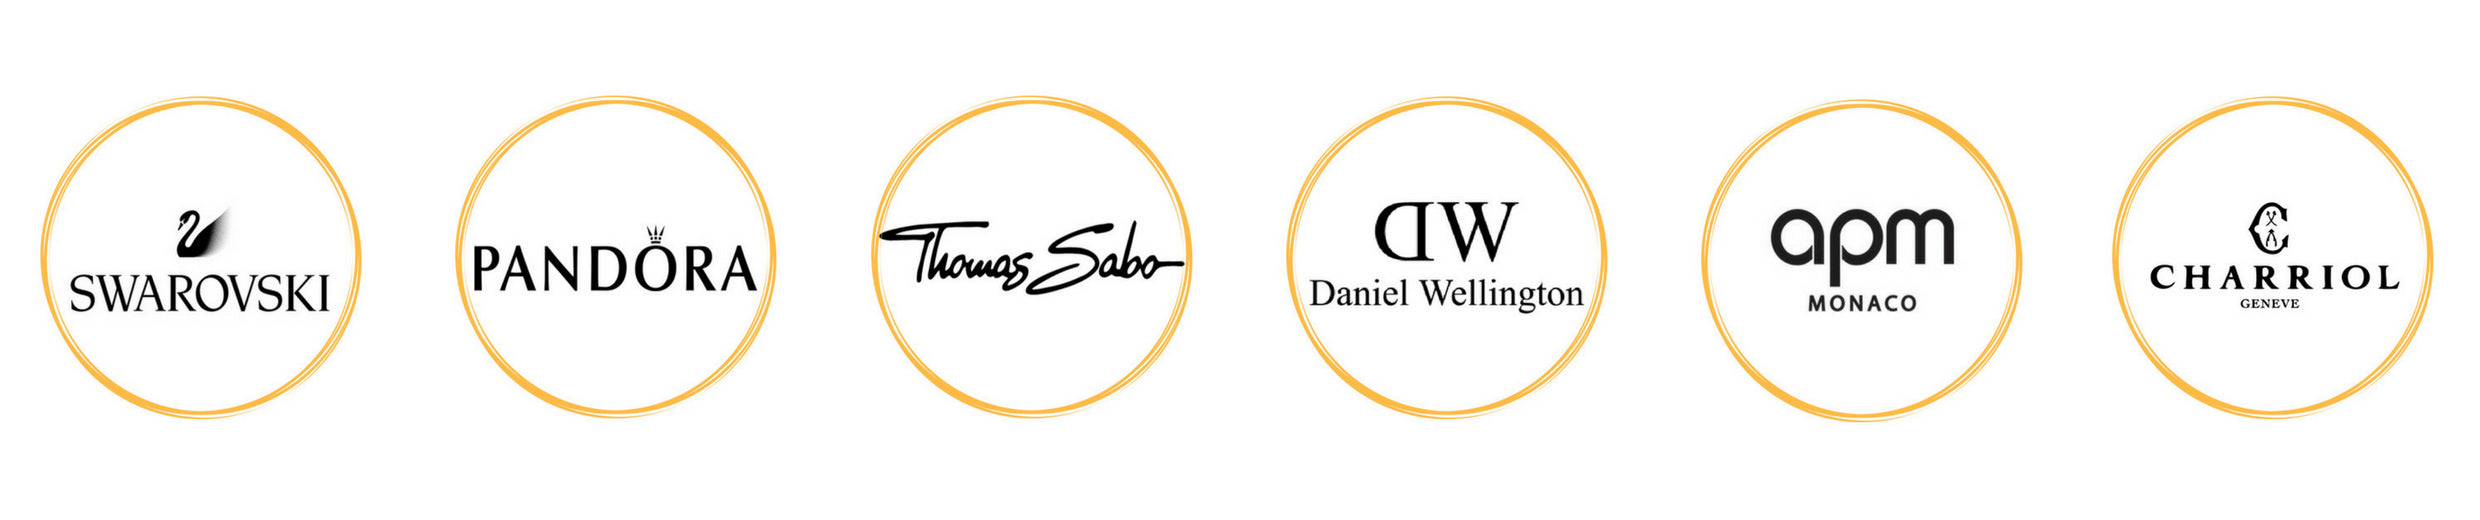 Official Authorized Retailer Of Pandora Jewelry , Swarovski Jewelry, and Daniel Wellington Watches